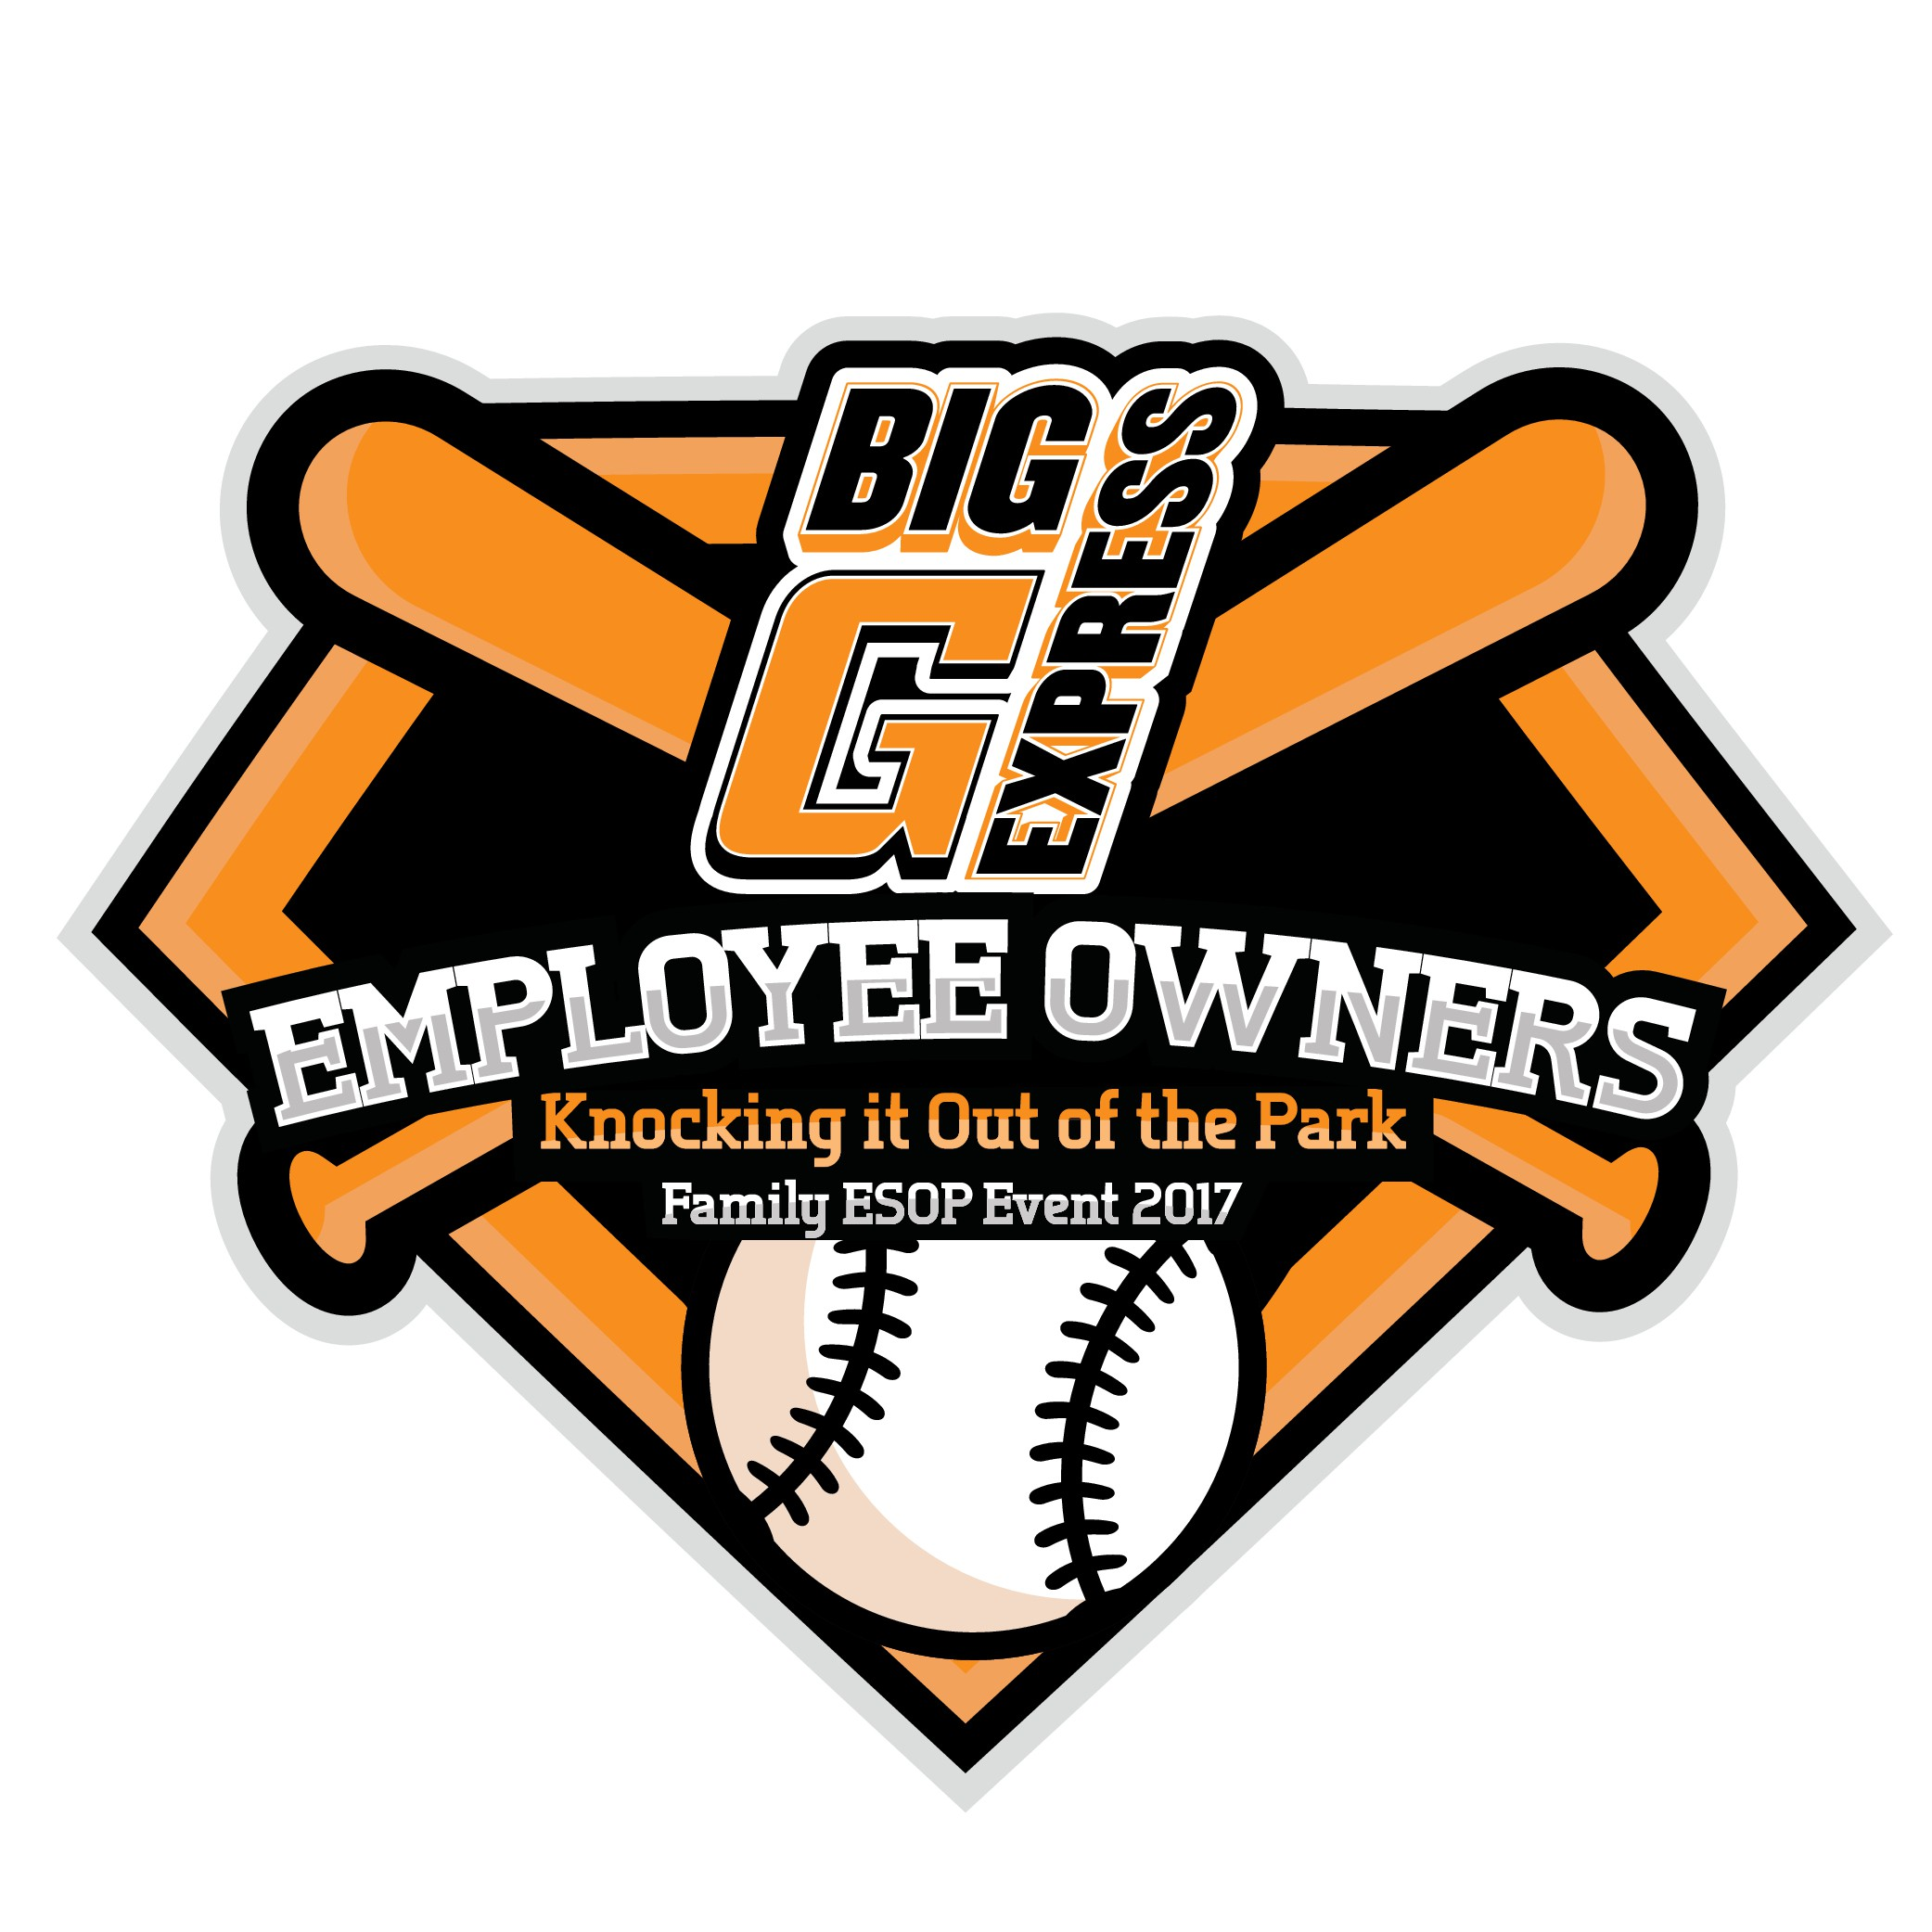 Tshirt design for trucking company family event at baseball game